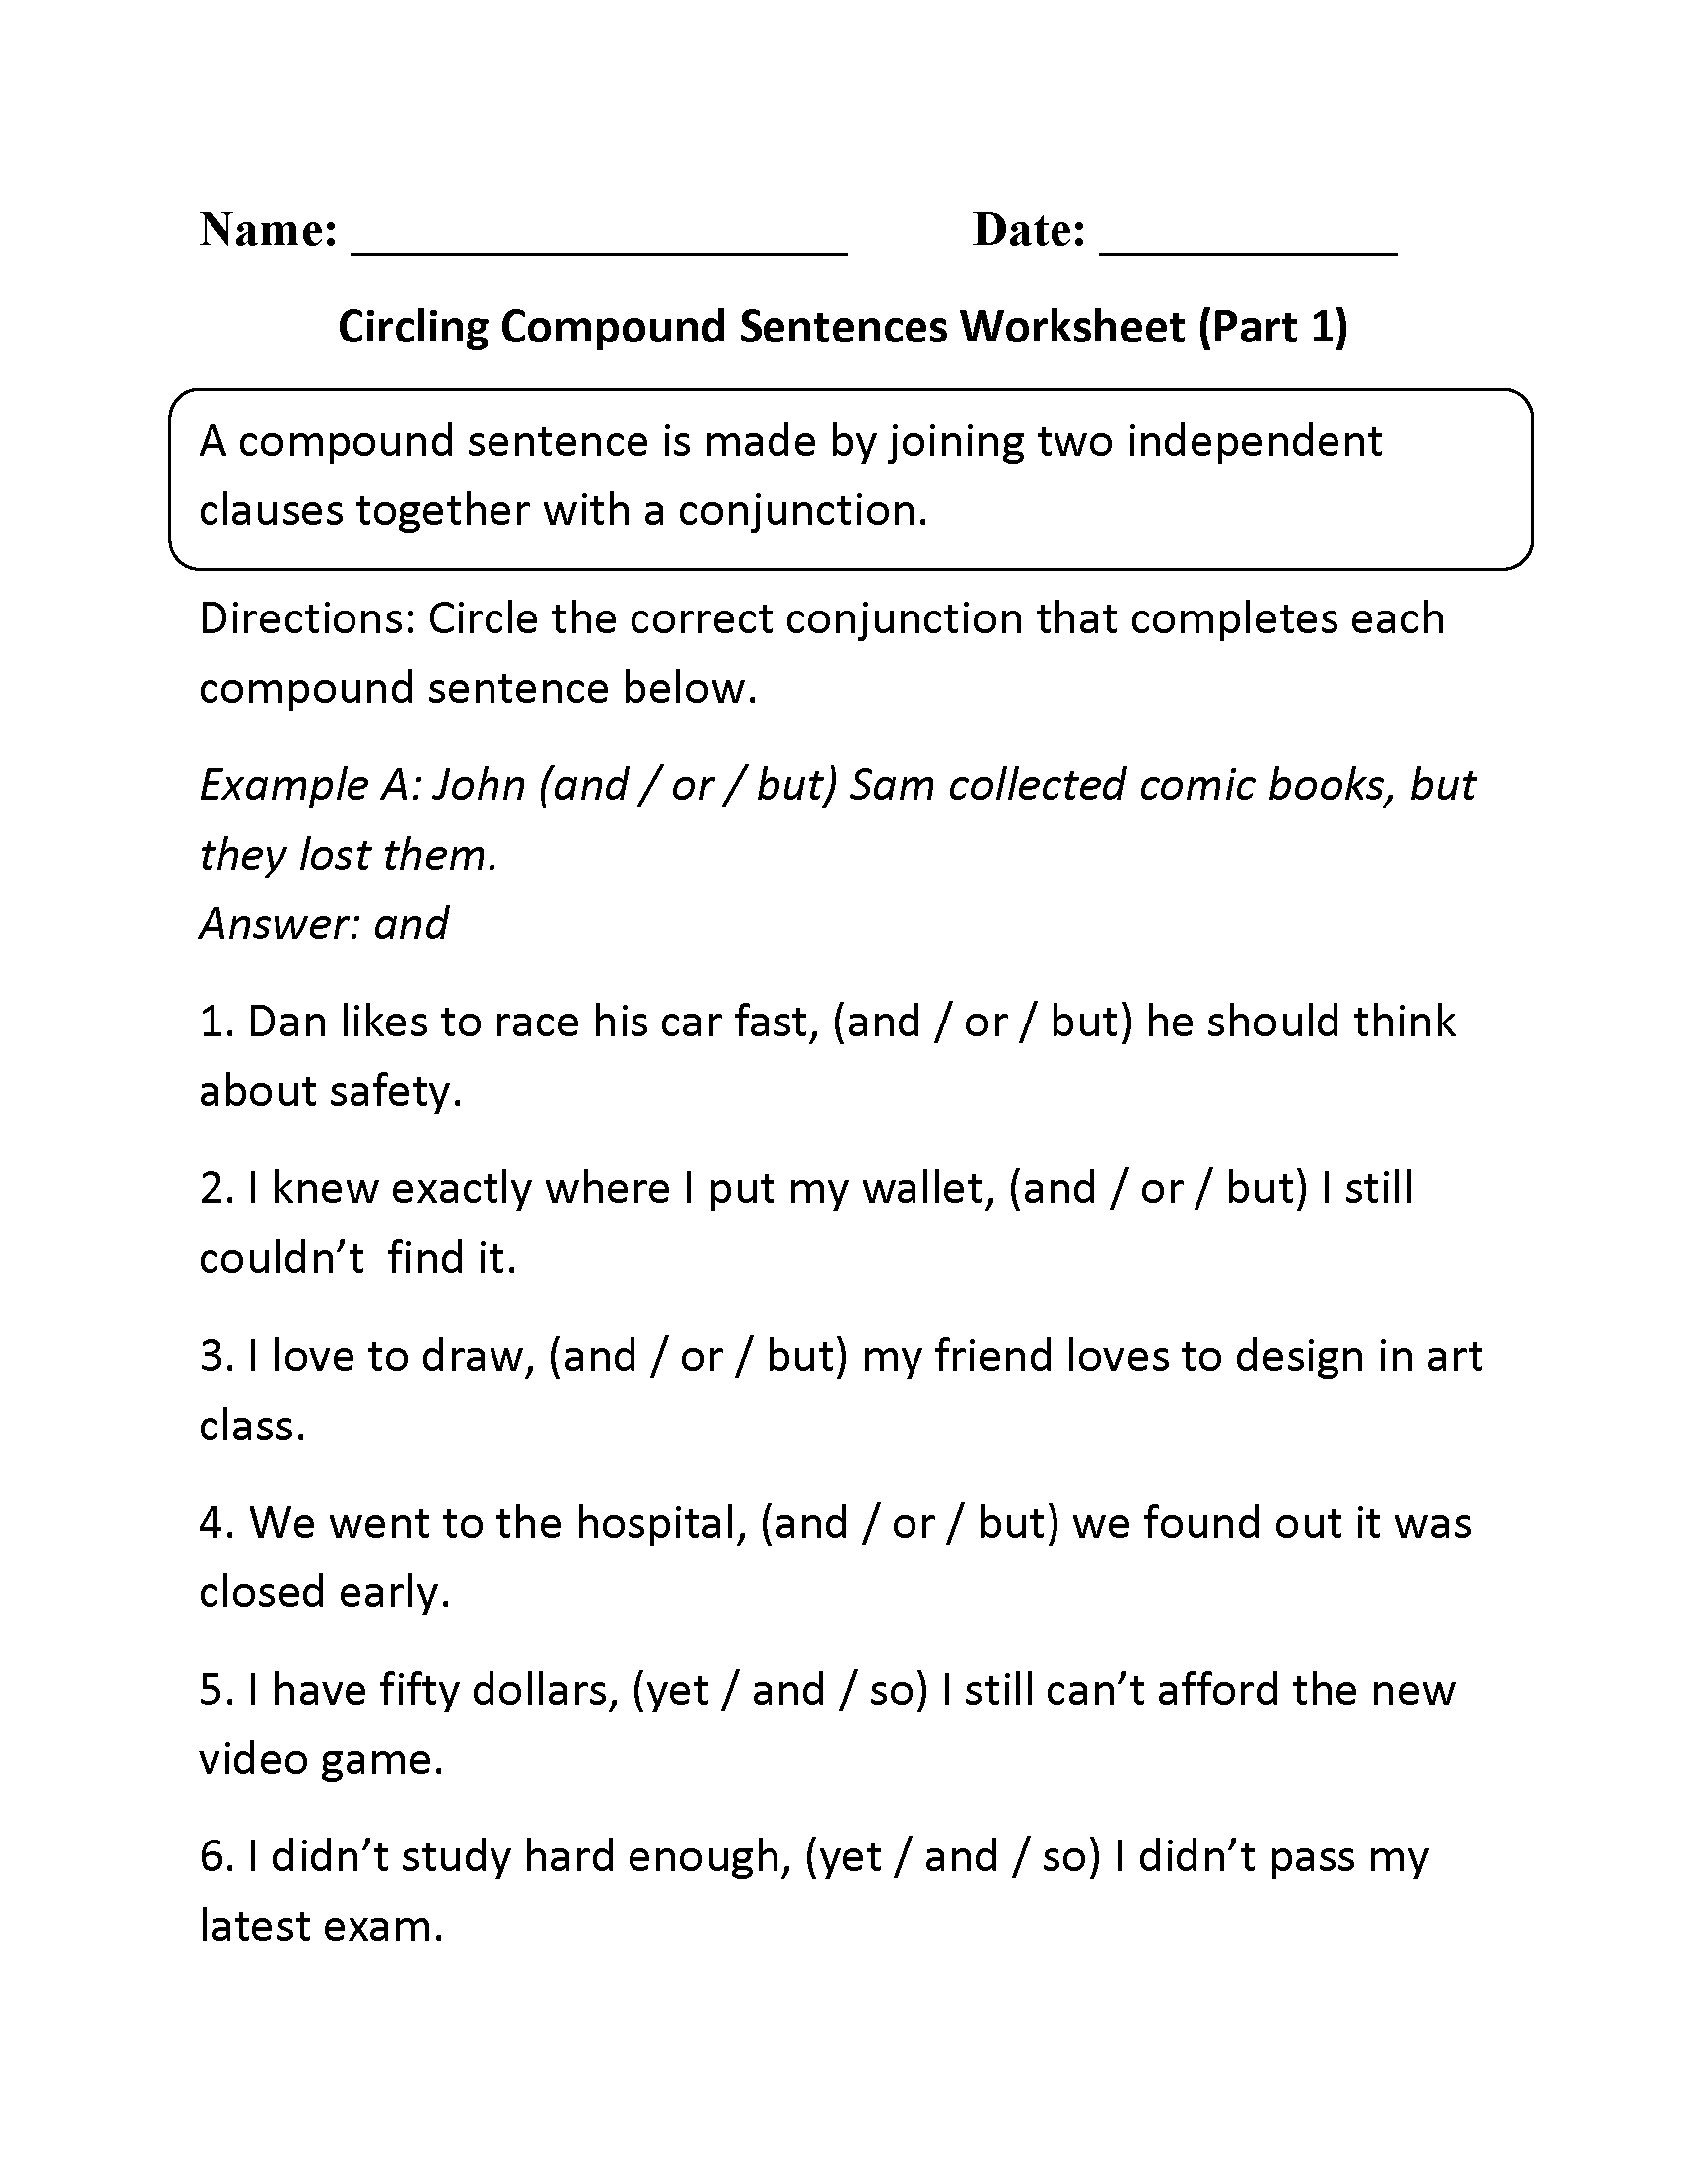 worksheet Compound And Complex Sentence Worksheets circling compound sentences worksheet part 1 madison english lit 1